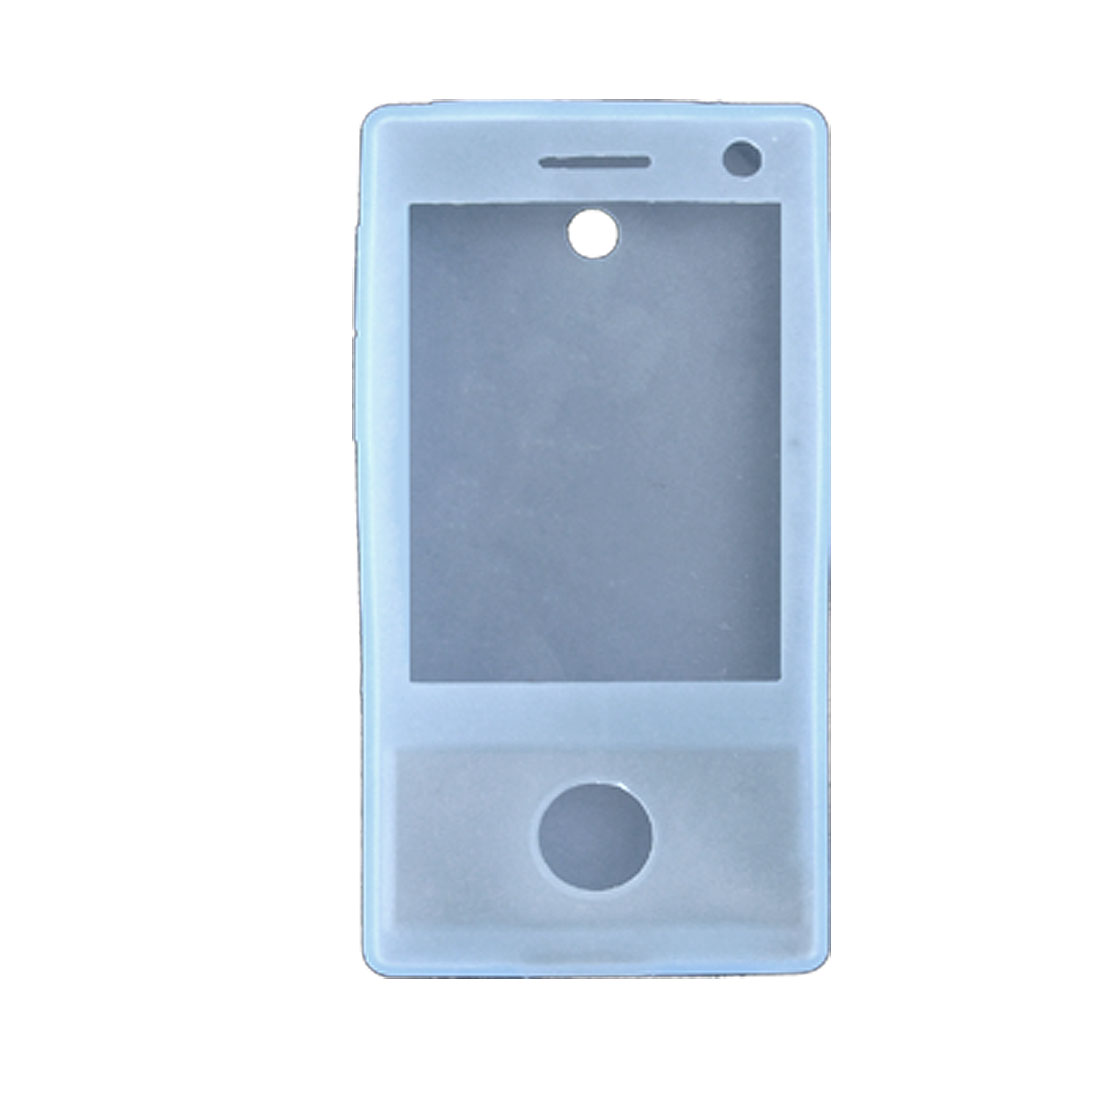 Blue Soft Silicone Cover Protector for HTC Touch Diamond